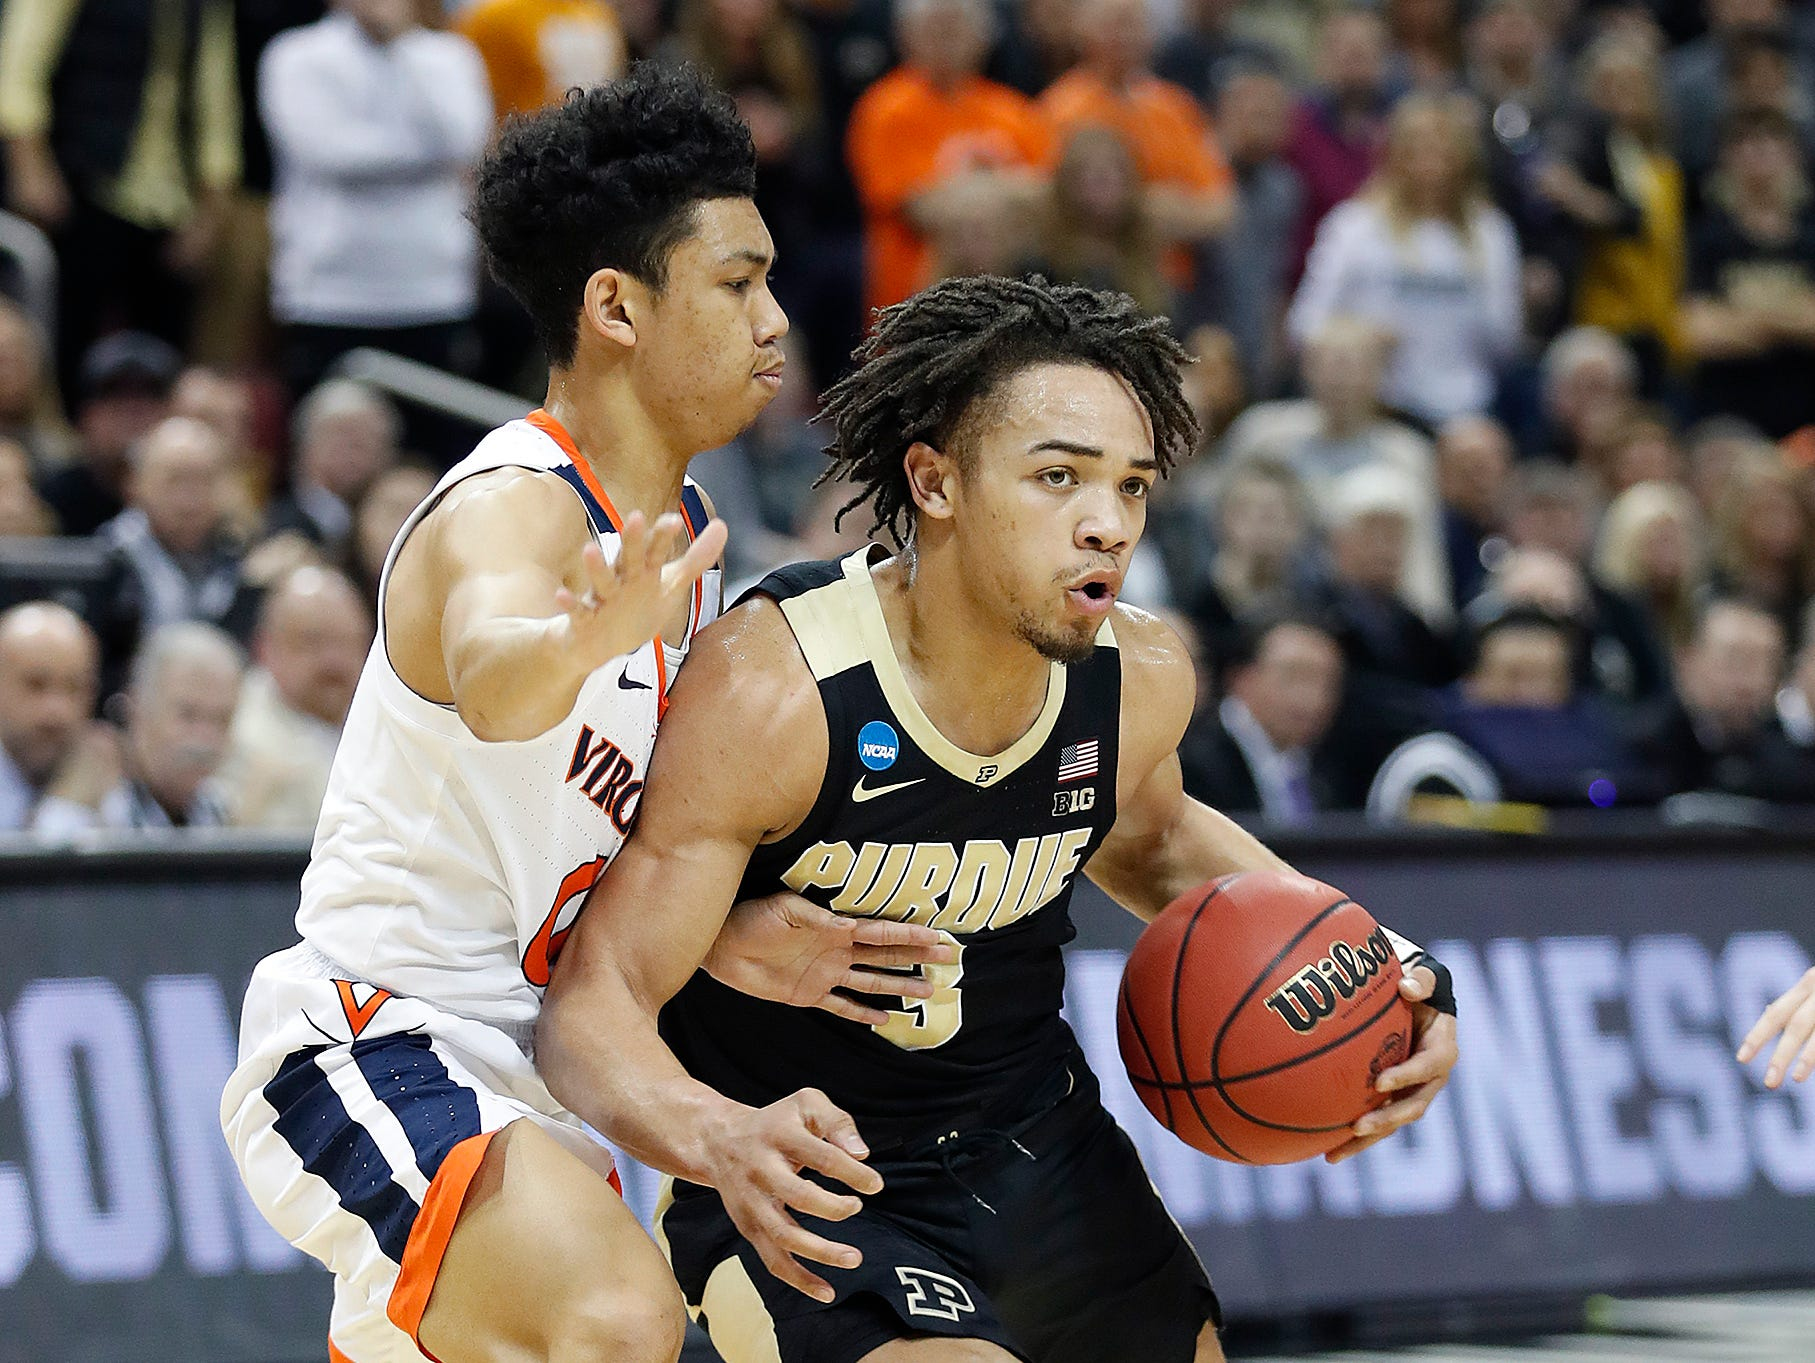 "Purdue Boilermakers guard Carsen Edwards (3) drives around Virginia Cavaliers guard Kihei Clark (0) in the first half of their NCAA Division I Basketball Championship ""Elite 8"" basketball game at the KFC Yum! Center in Louisville, KY., on Saturday, Mar 30, 2019."